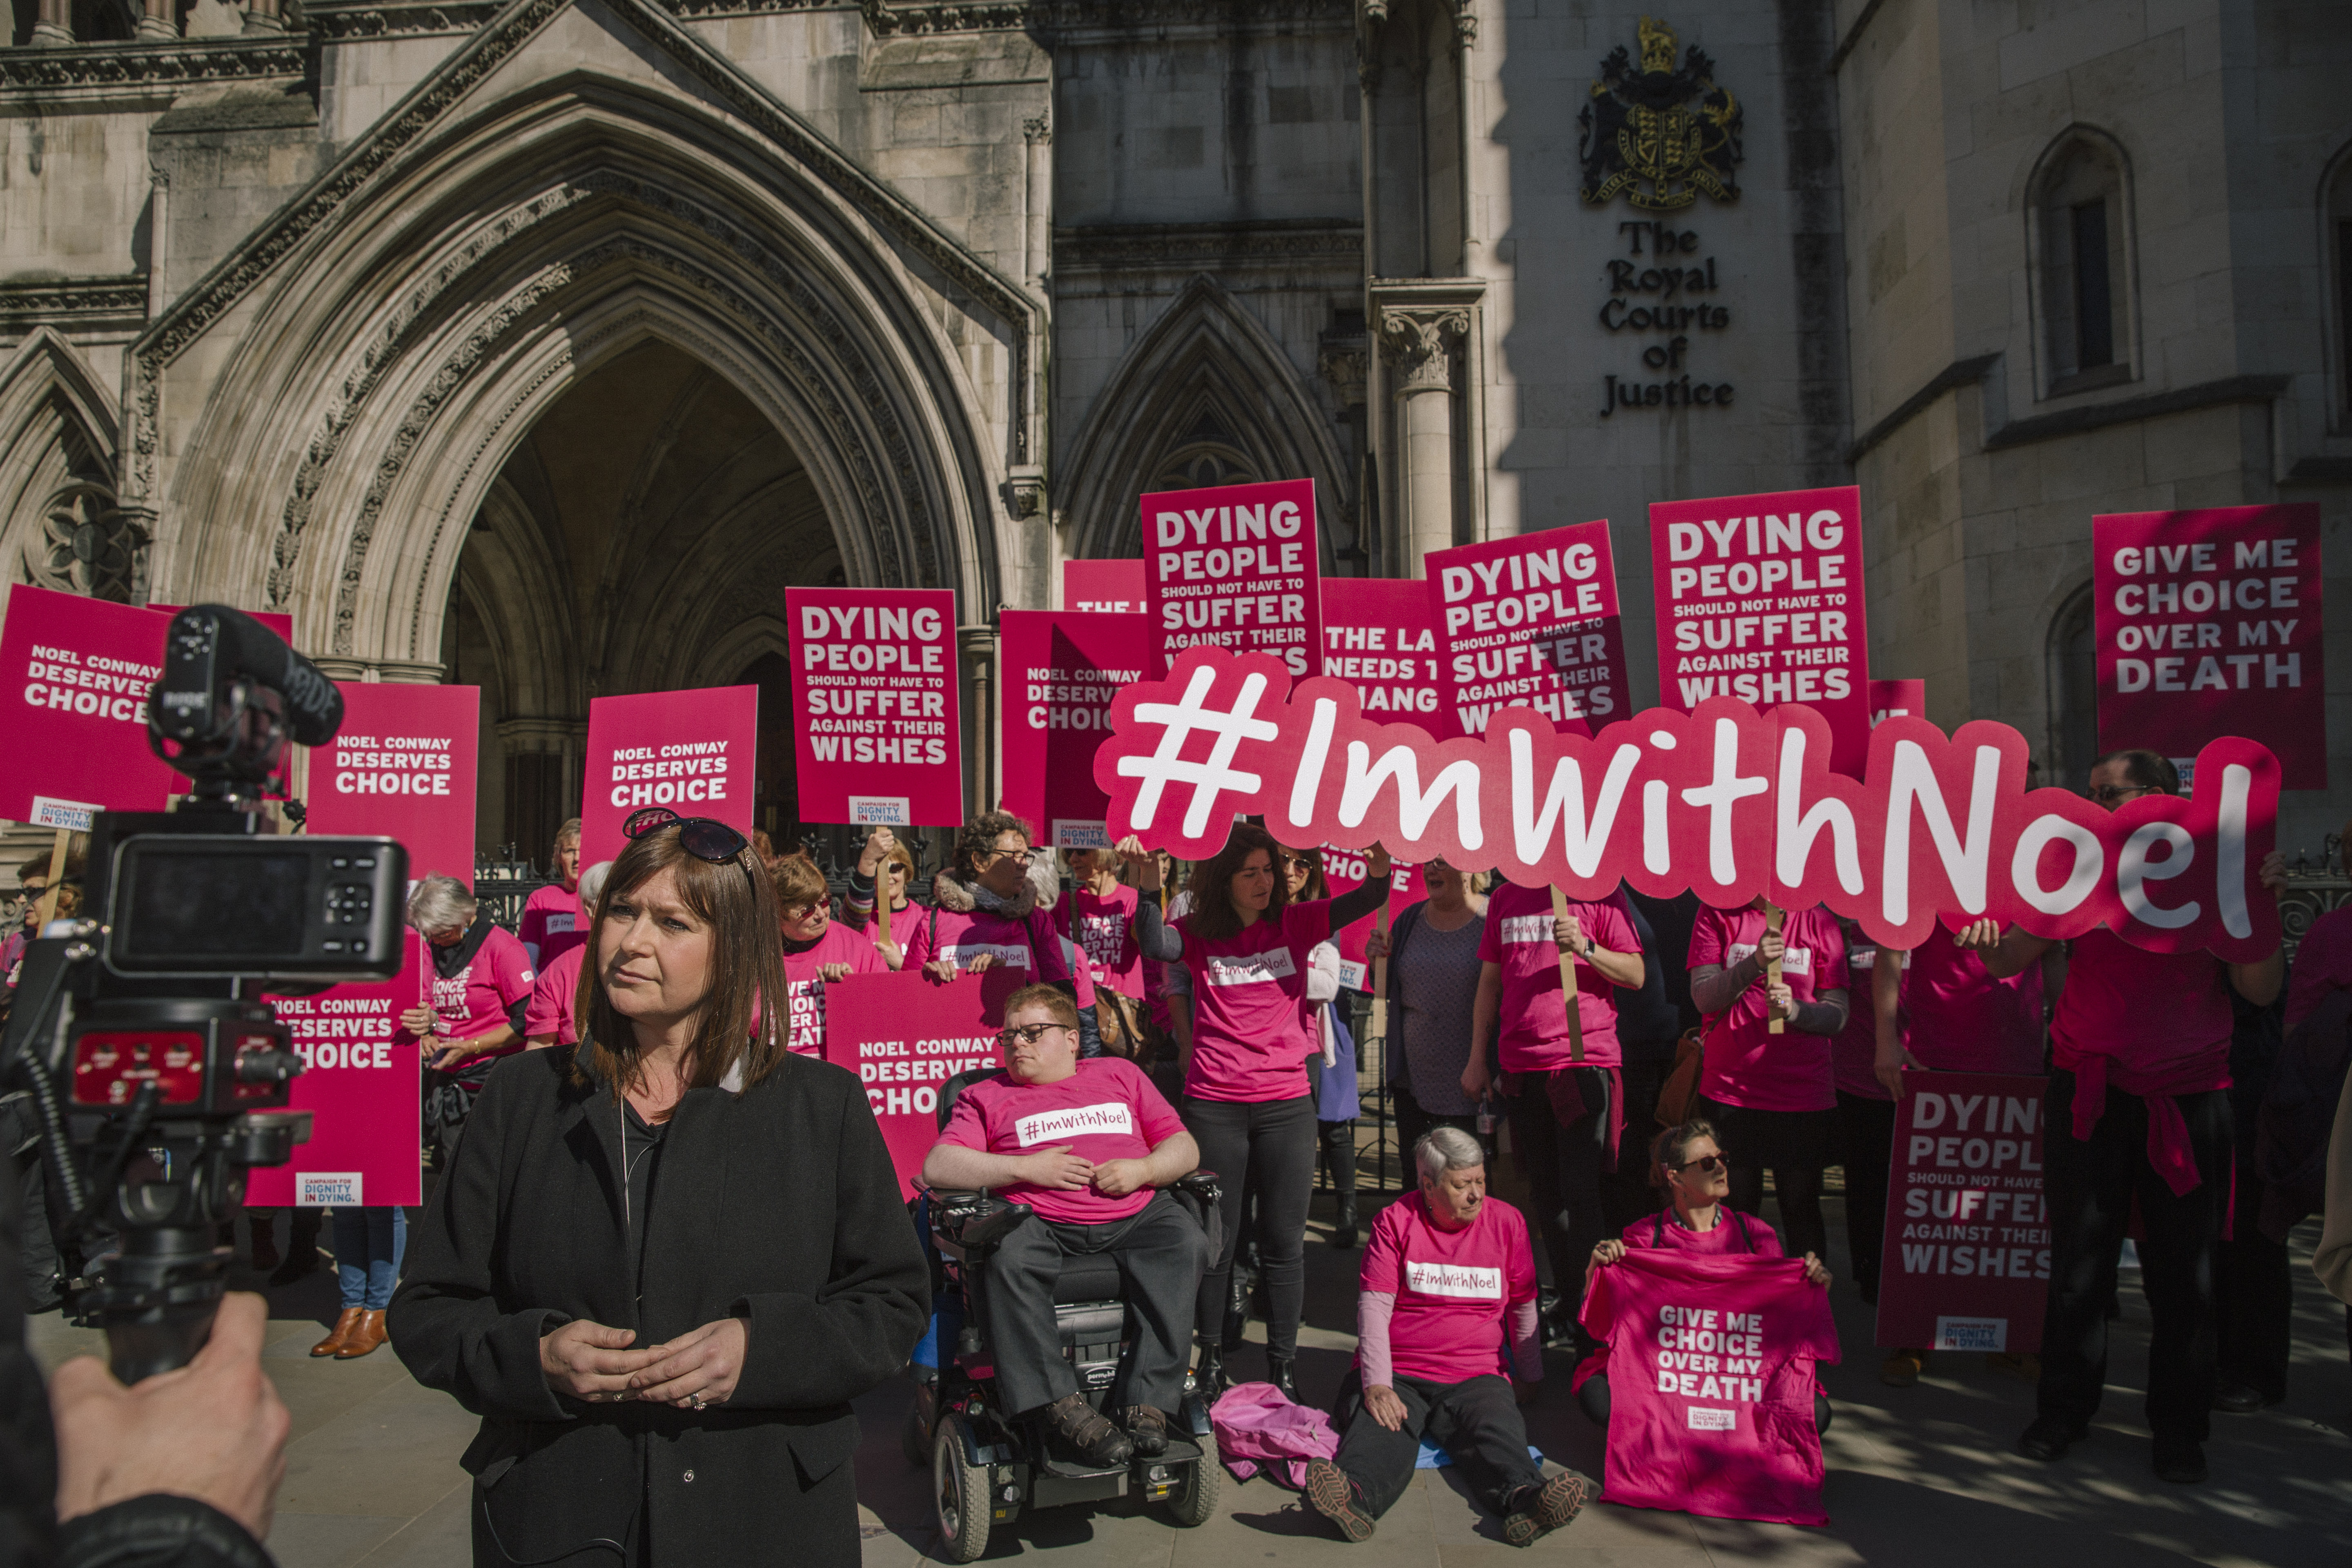 Protest to fight for assisted dying